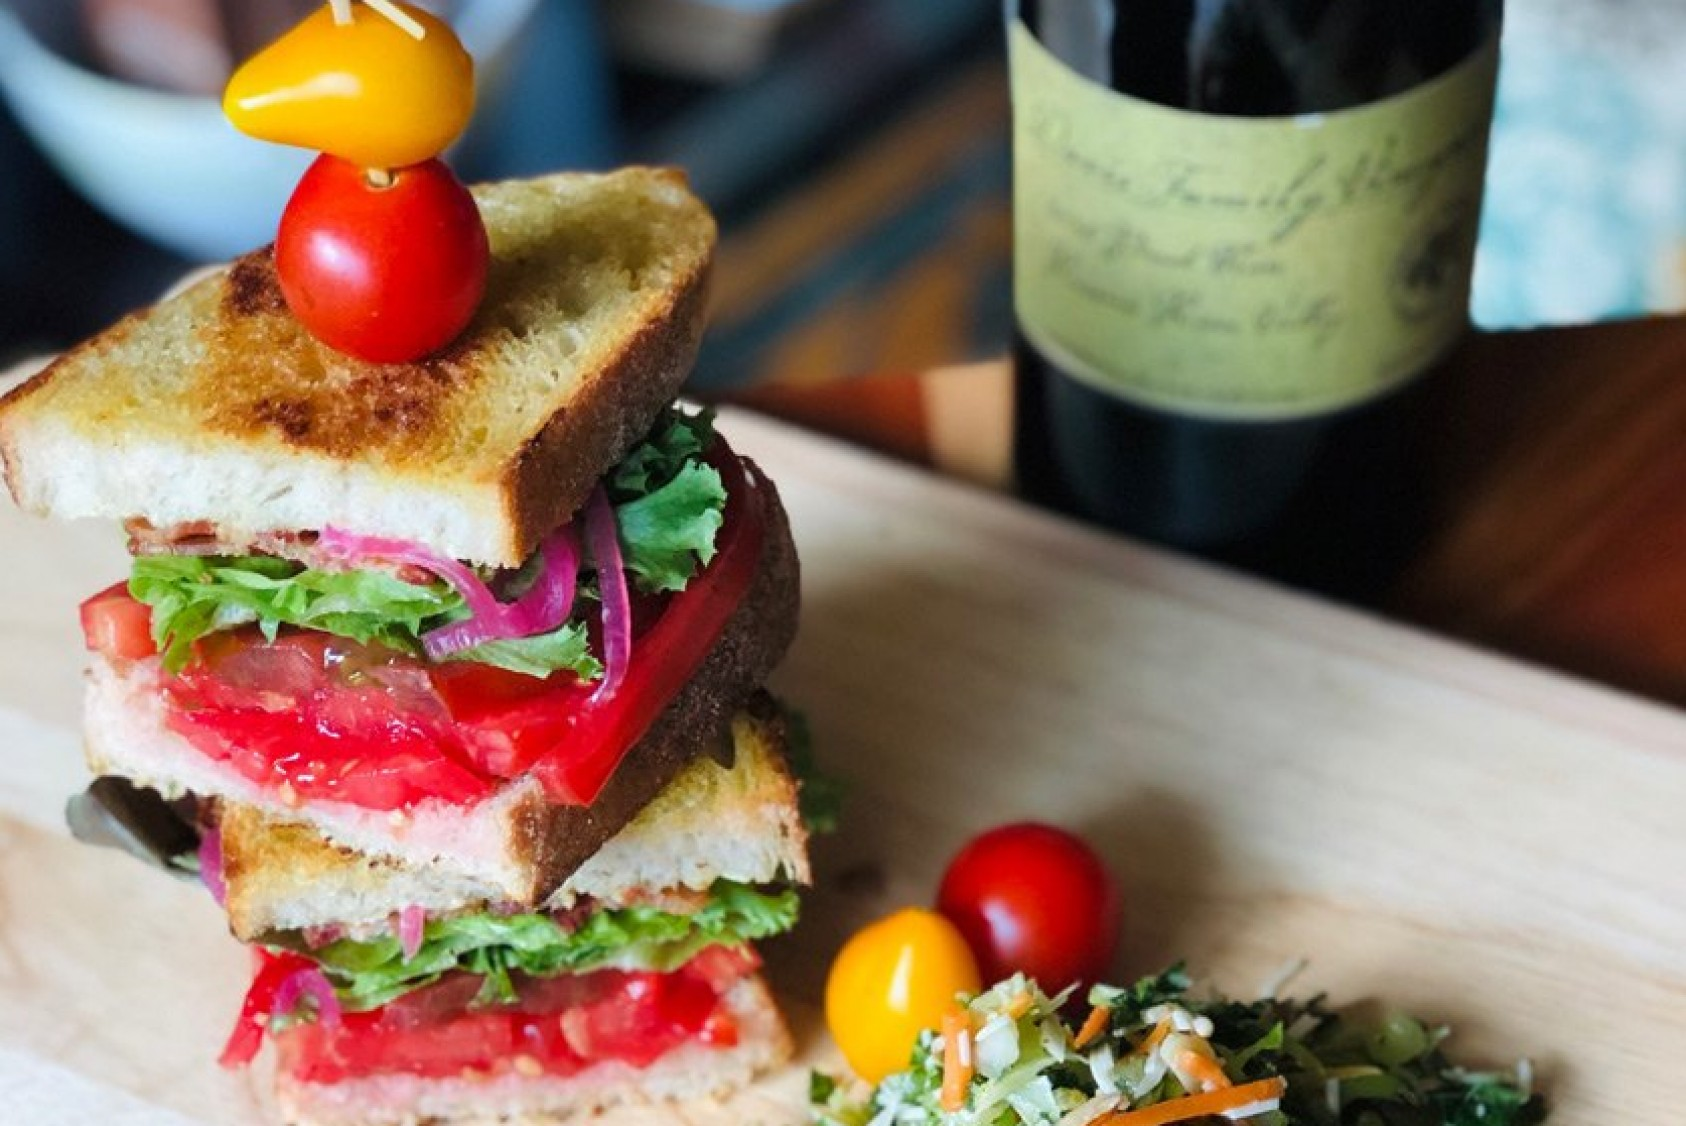 One of Blake's culinary creations: Beef Master and Cherokee Purple heirloom tomatoes, toasted sourdough, Nueske Wisconsin smoked bacon, arugula, roasted garlic aioli, pickled shallots